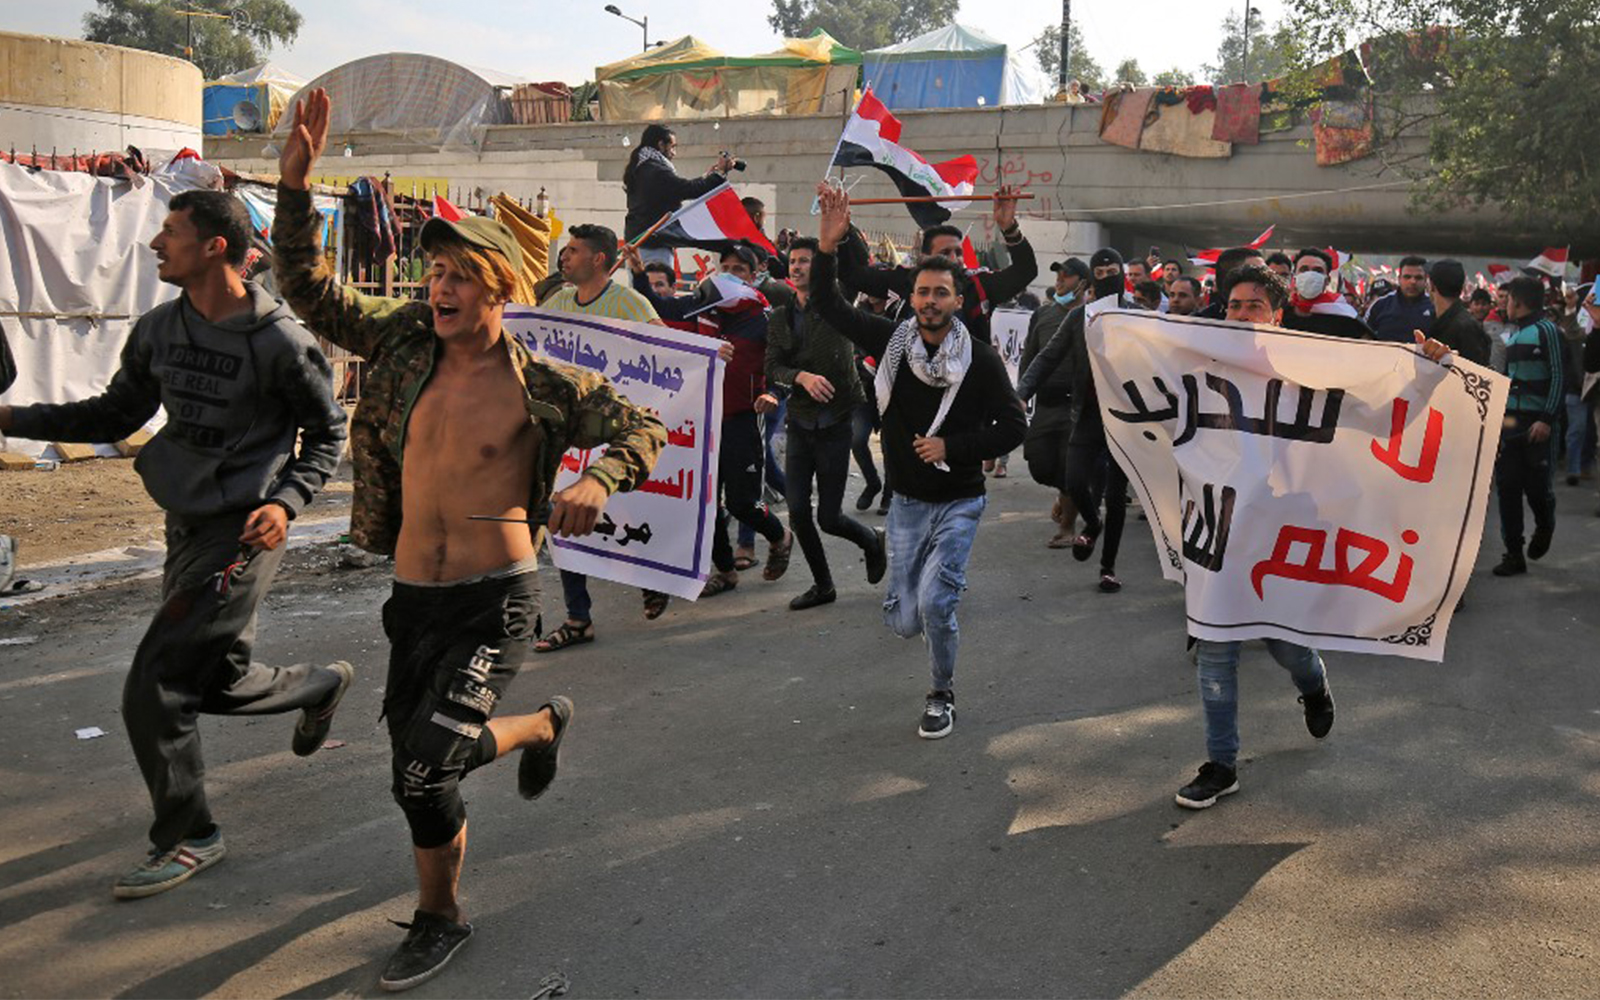 Iraqi officials raise Dec 6's toll to 25 protesters killed